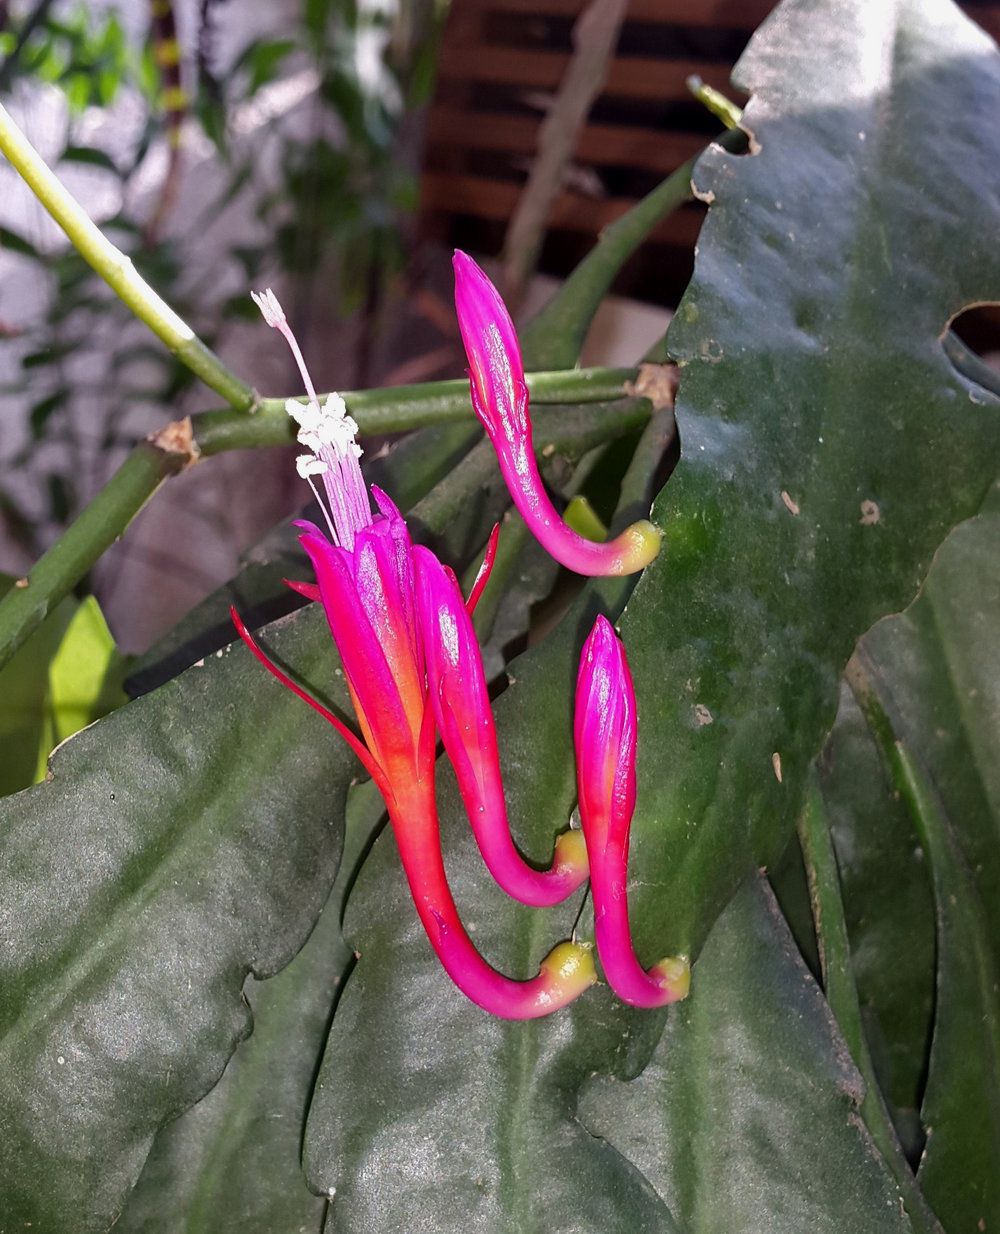 Fully expanded corollas on a cultivated  Disocactus eichlamii  showing more magenta overtones. Grower and image: J.J. Castillo.